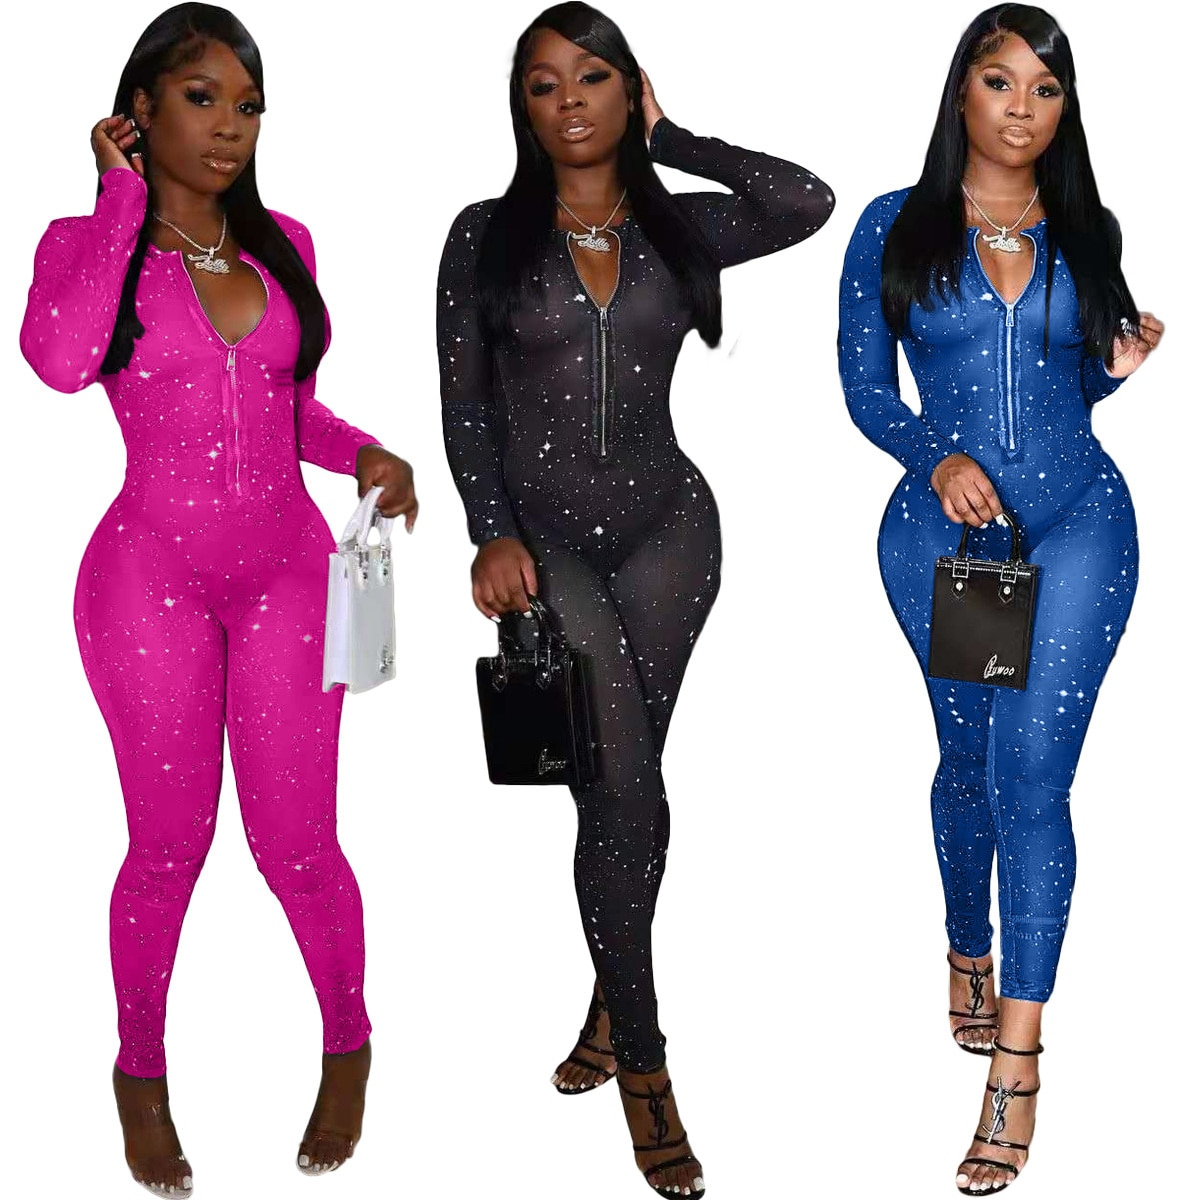 Polka Dot Print Mesh Jumpsuit Woman Long Sleeve Zipper V Neck Bodycon See Through One Piece Overalls Night Club Party Outfits